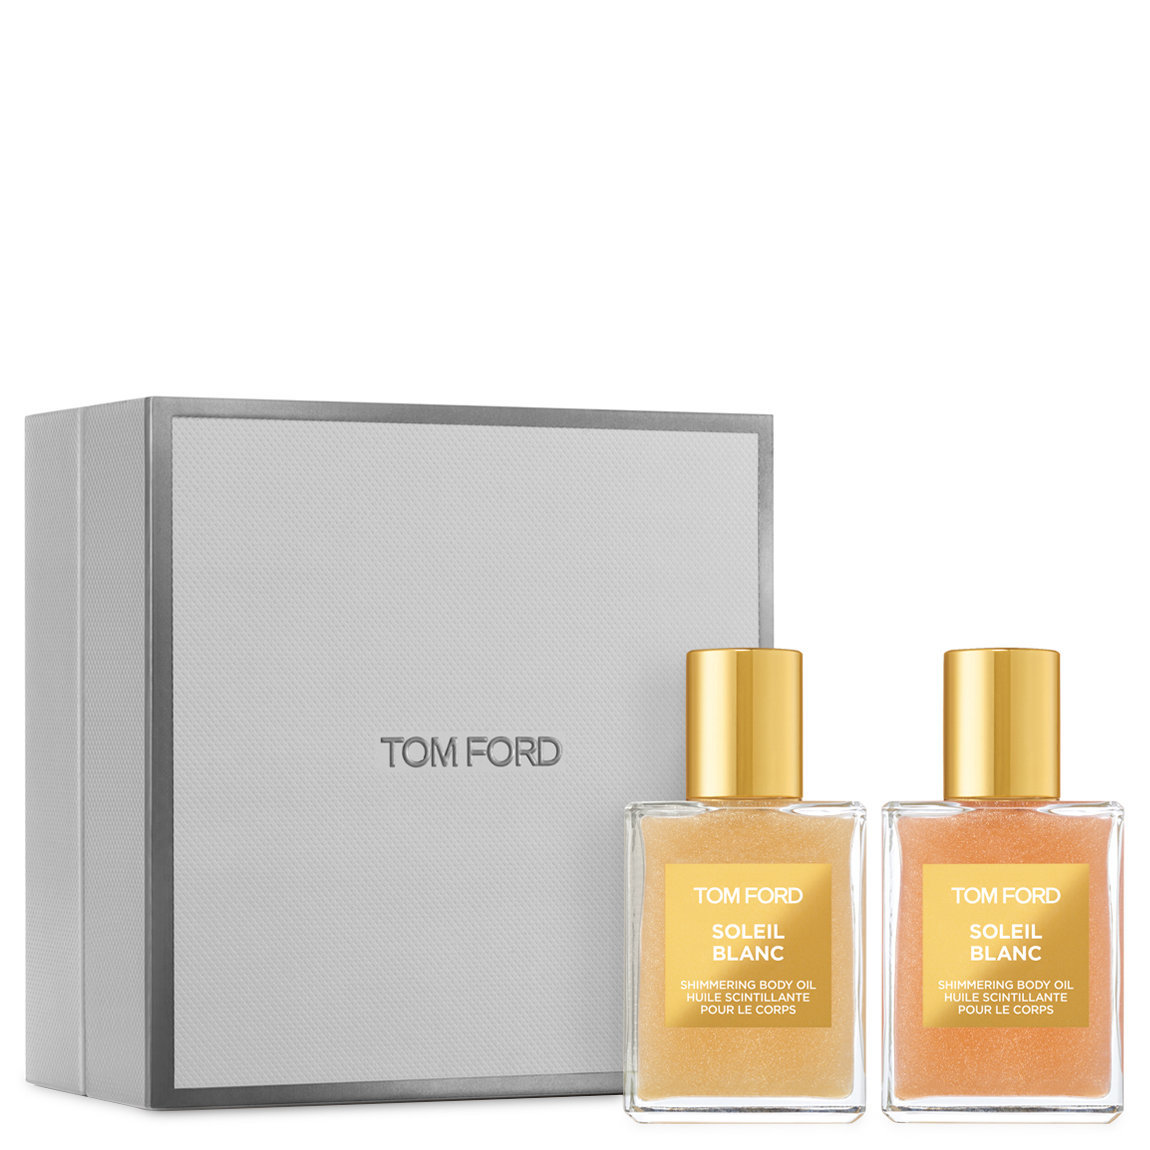 TOM FORD Soleil Blanc Shimmering Body Oil Duo product swatch.